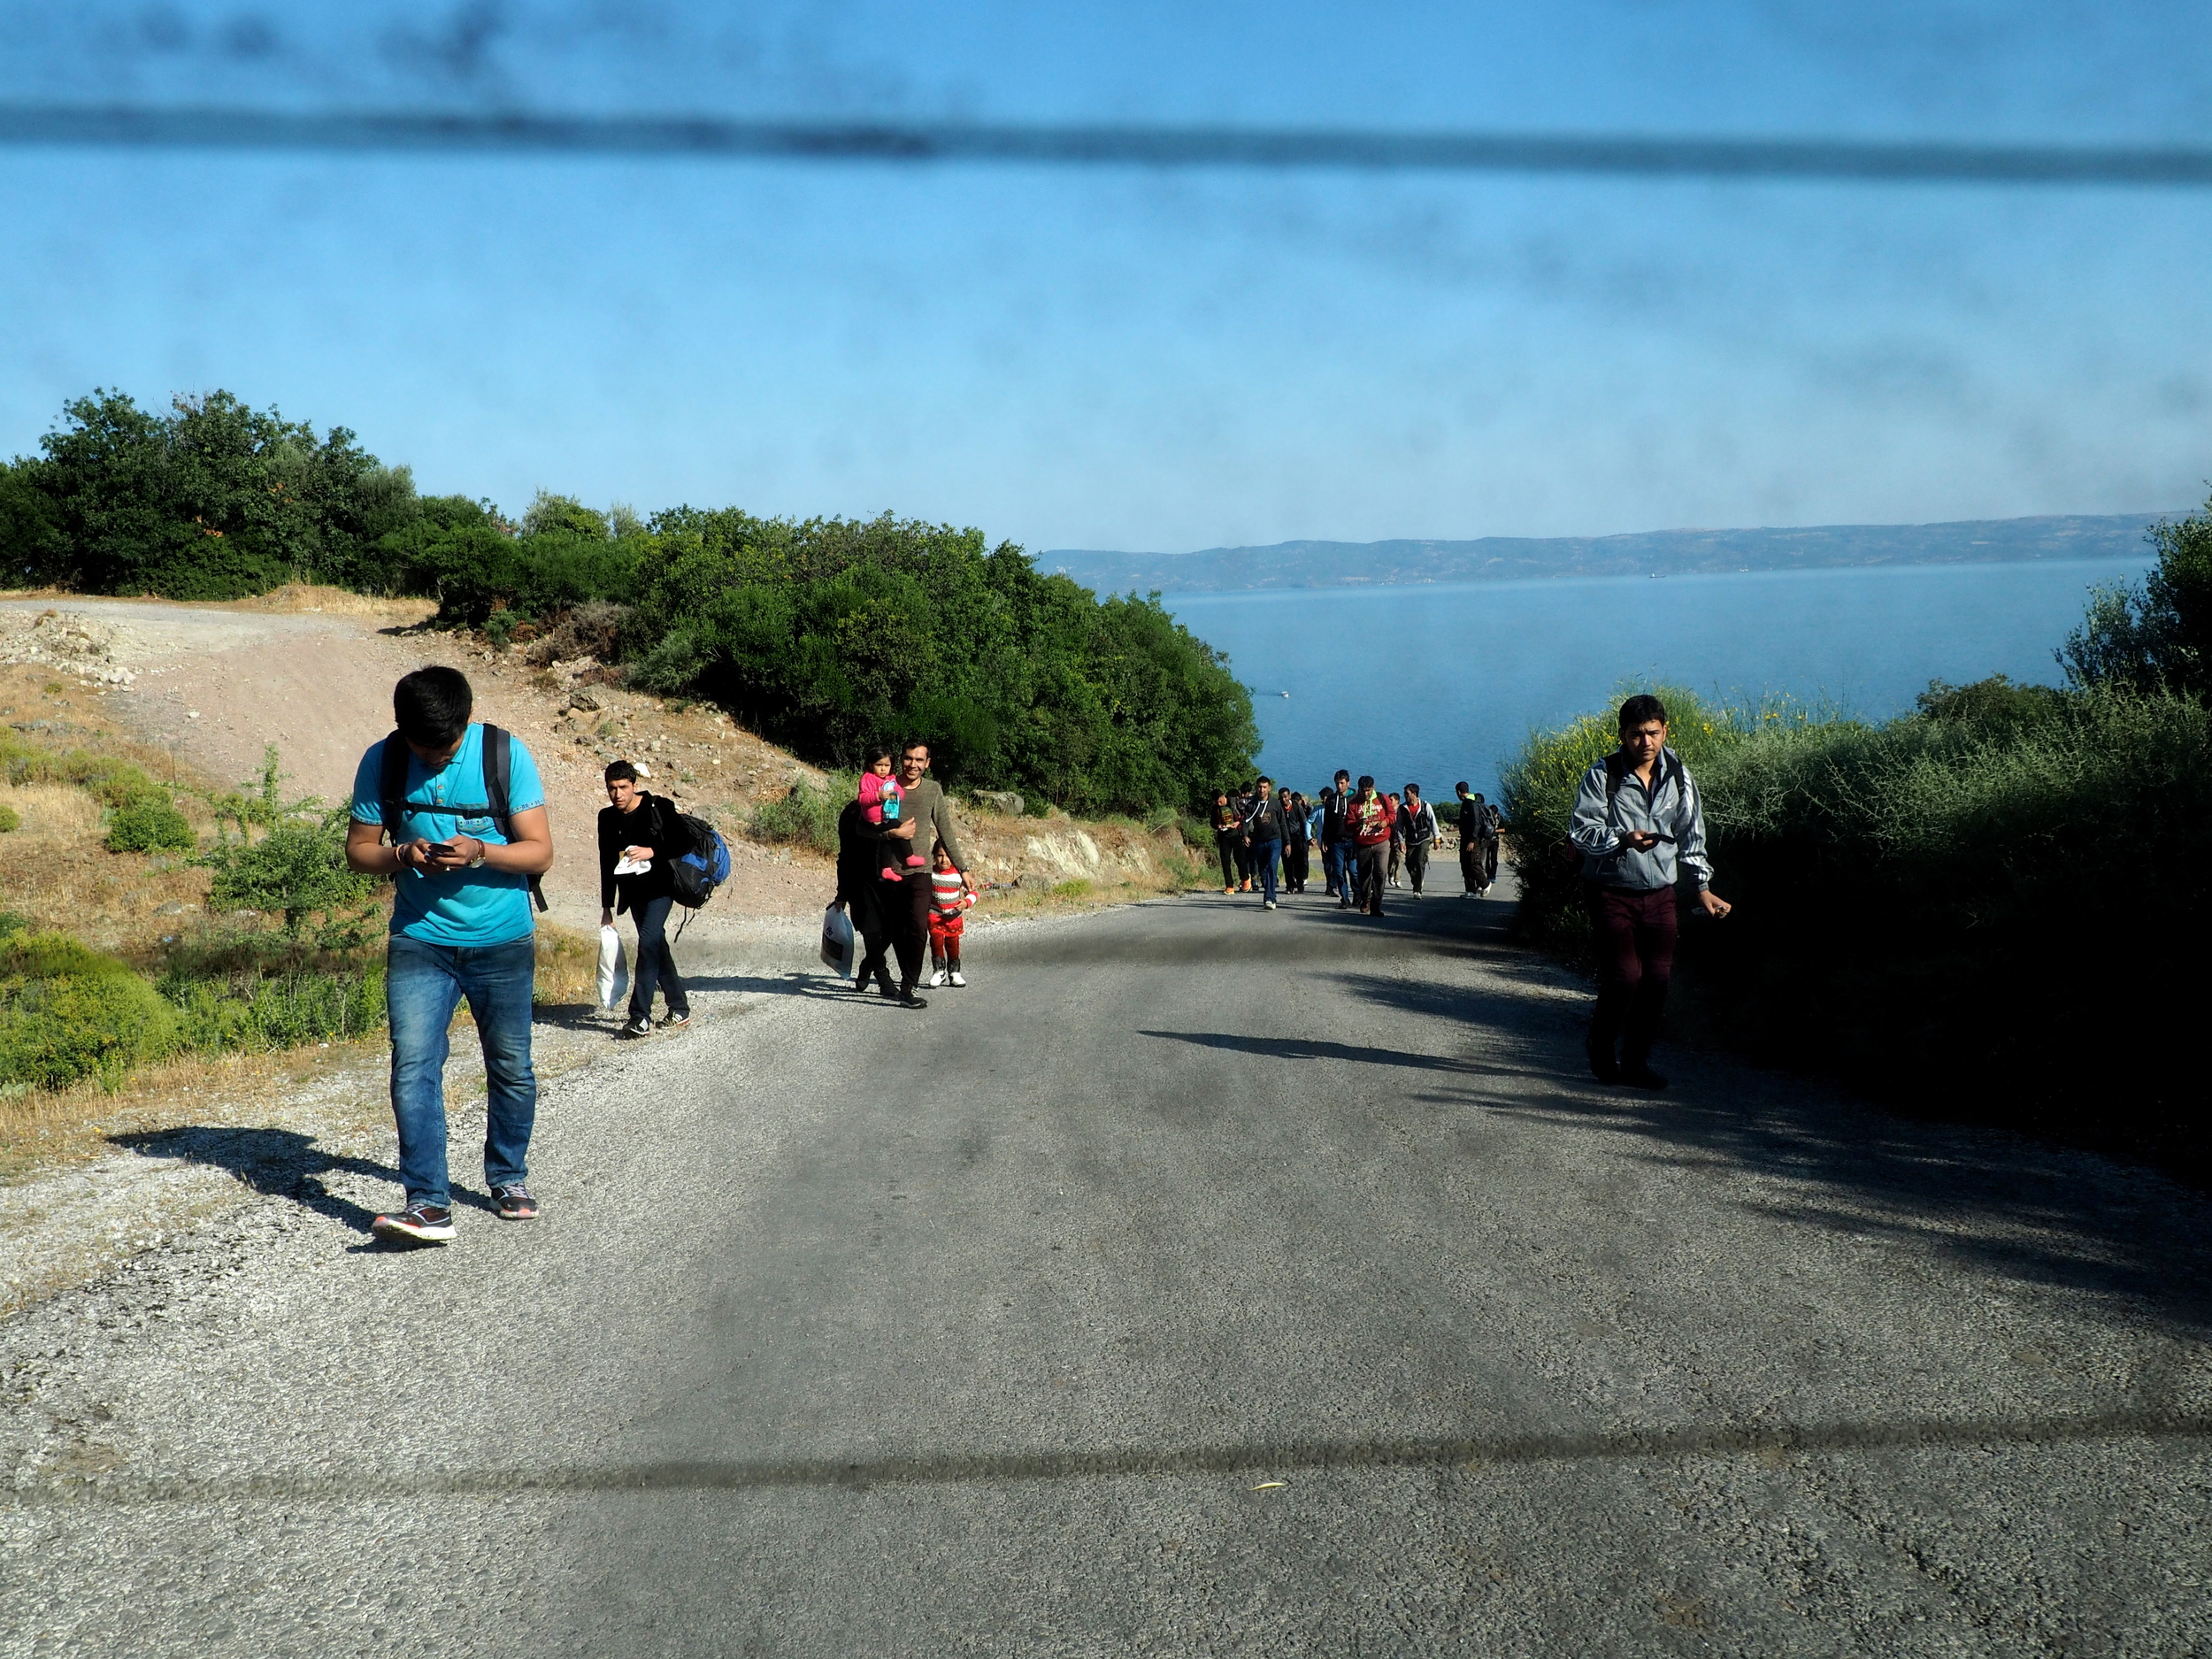 Migrants begin the 60 kilometre trek from Skala Sykaminias to Mytilene. Locals who offer them lifts risk being charged with human smuggling.